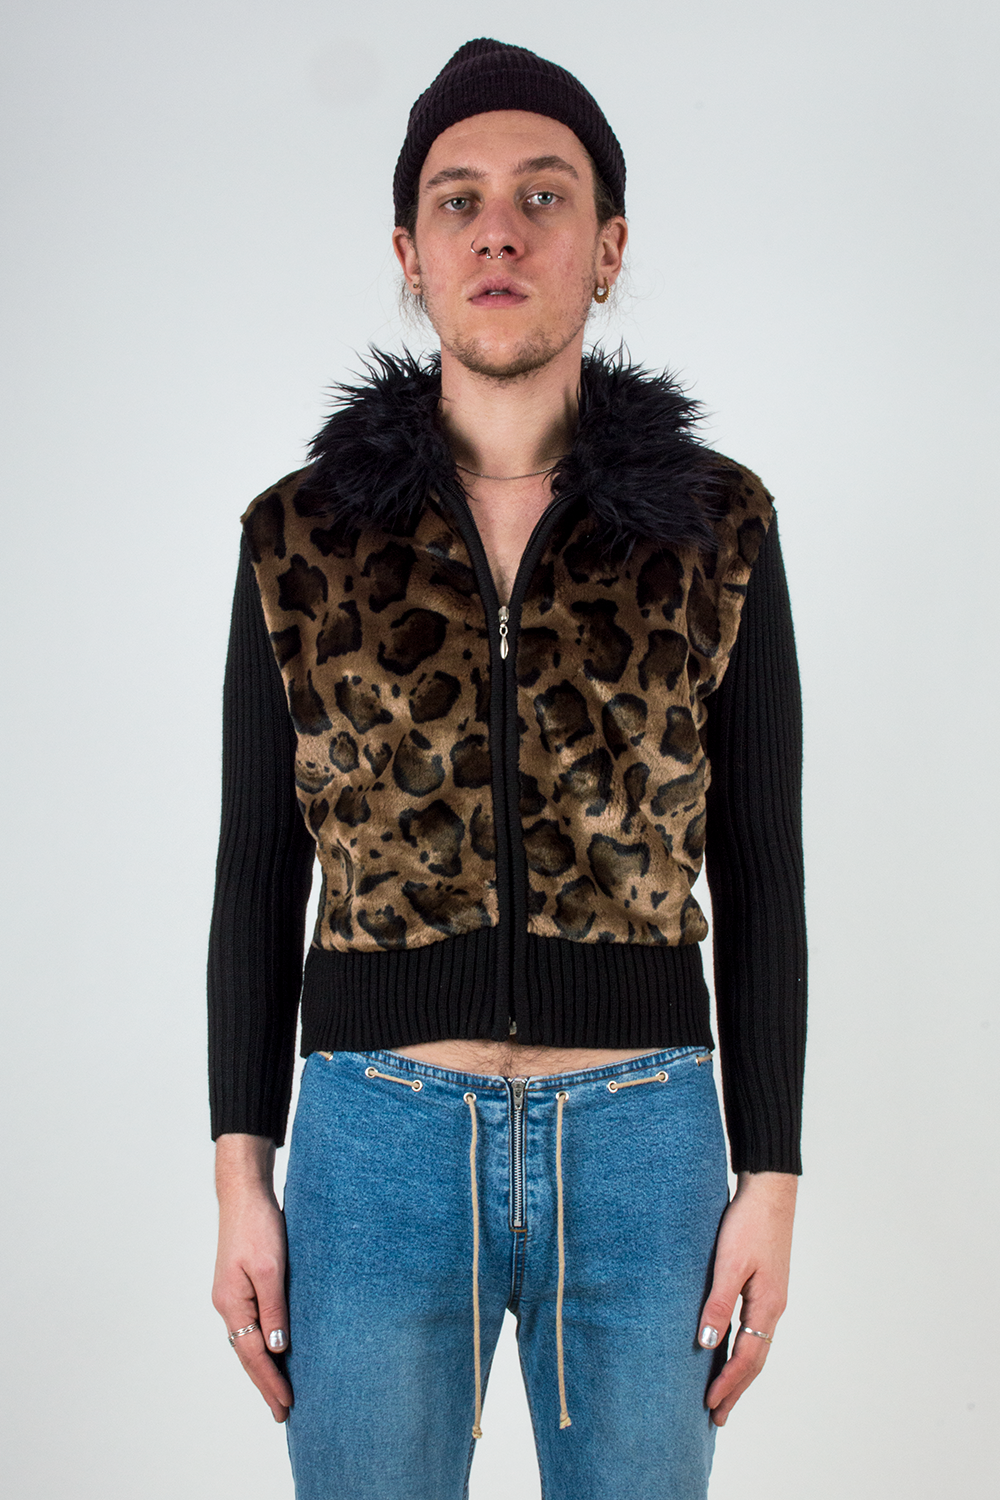 vintage leopard sweater jacket with black faux fur collar